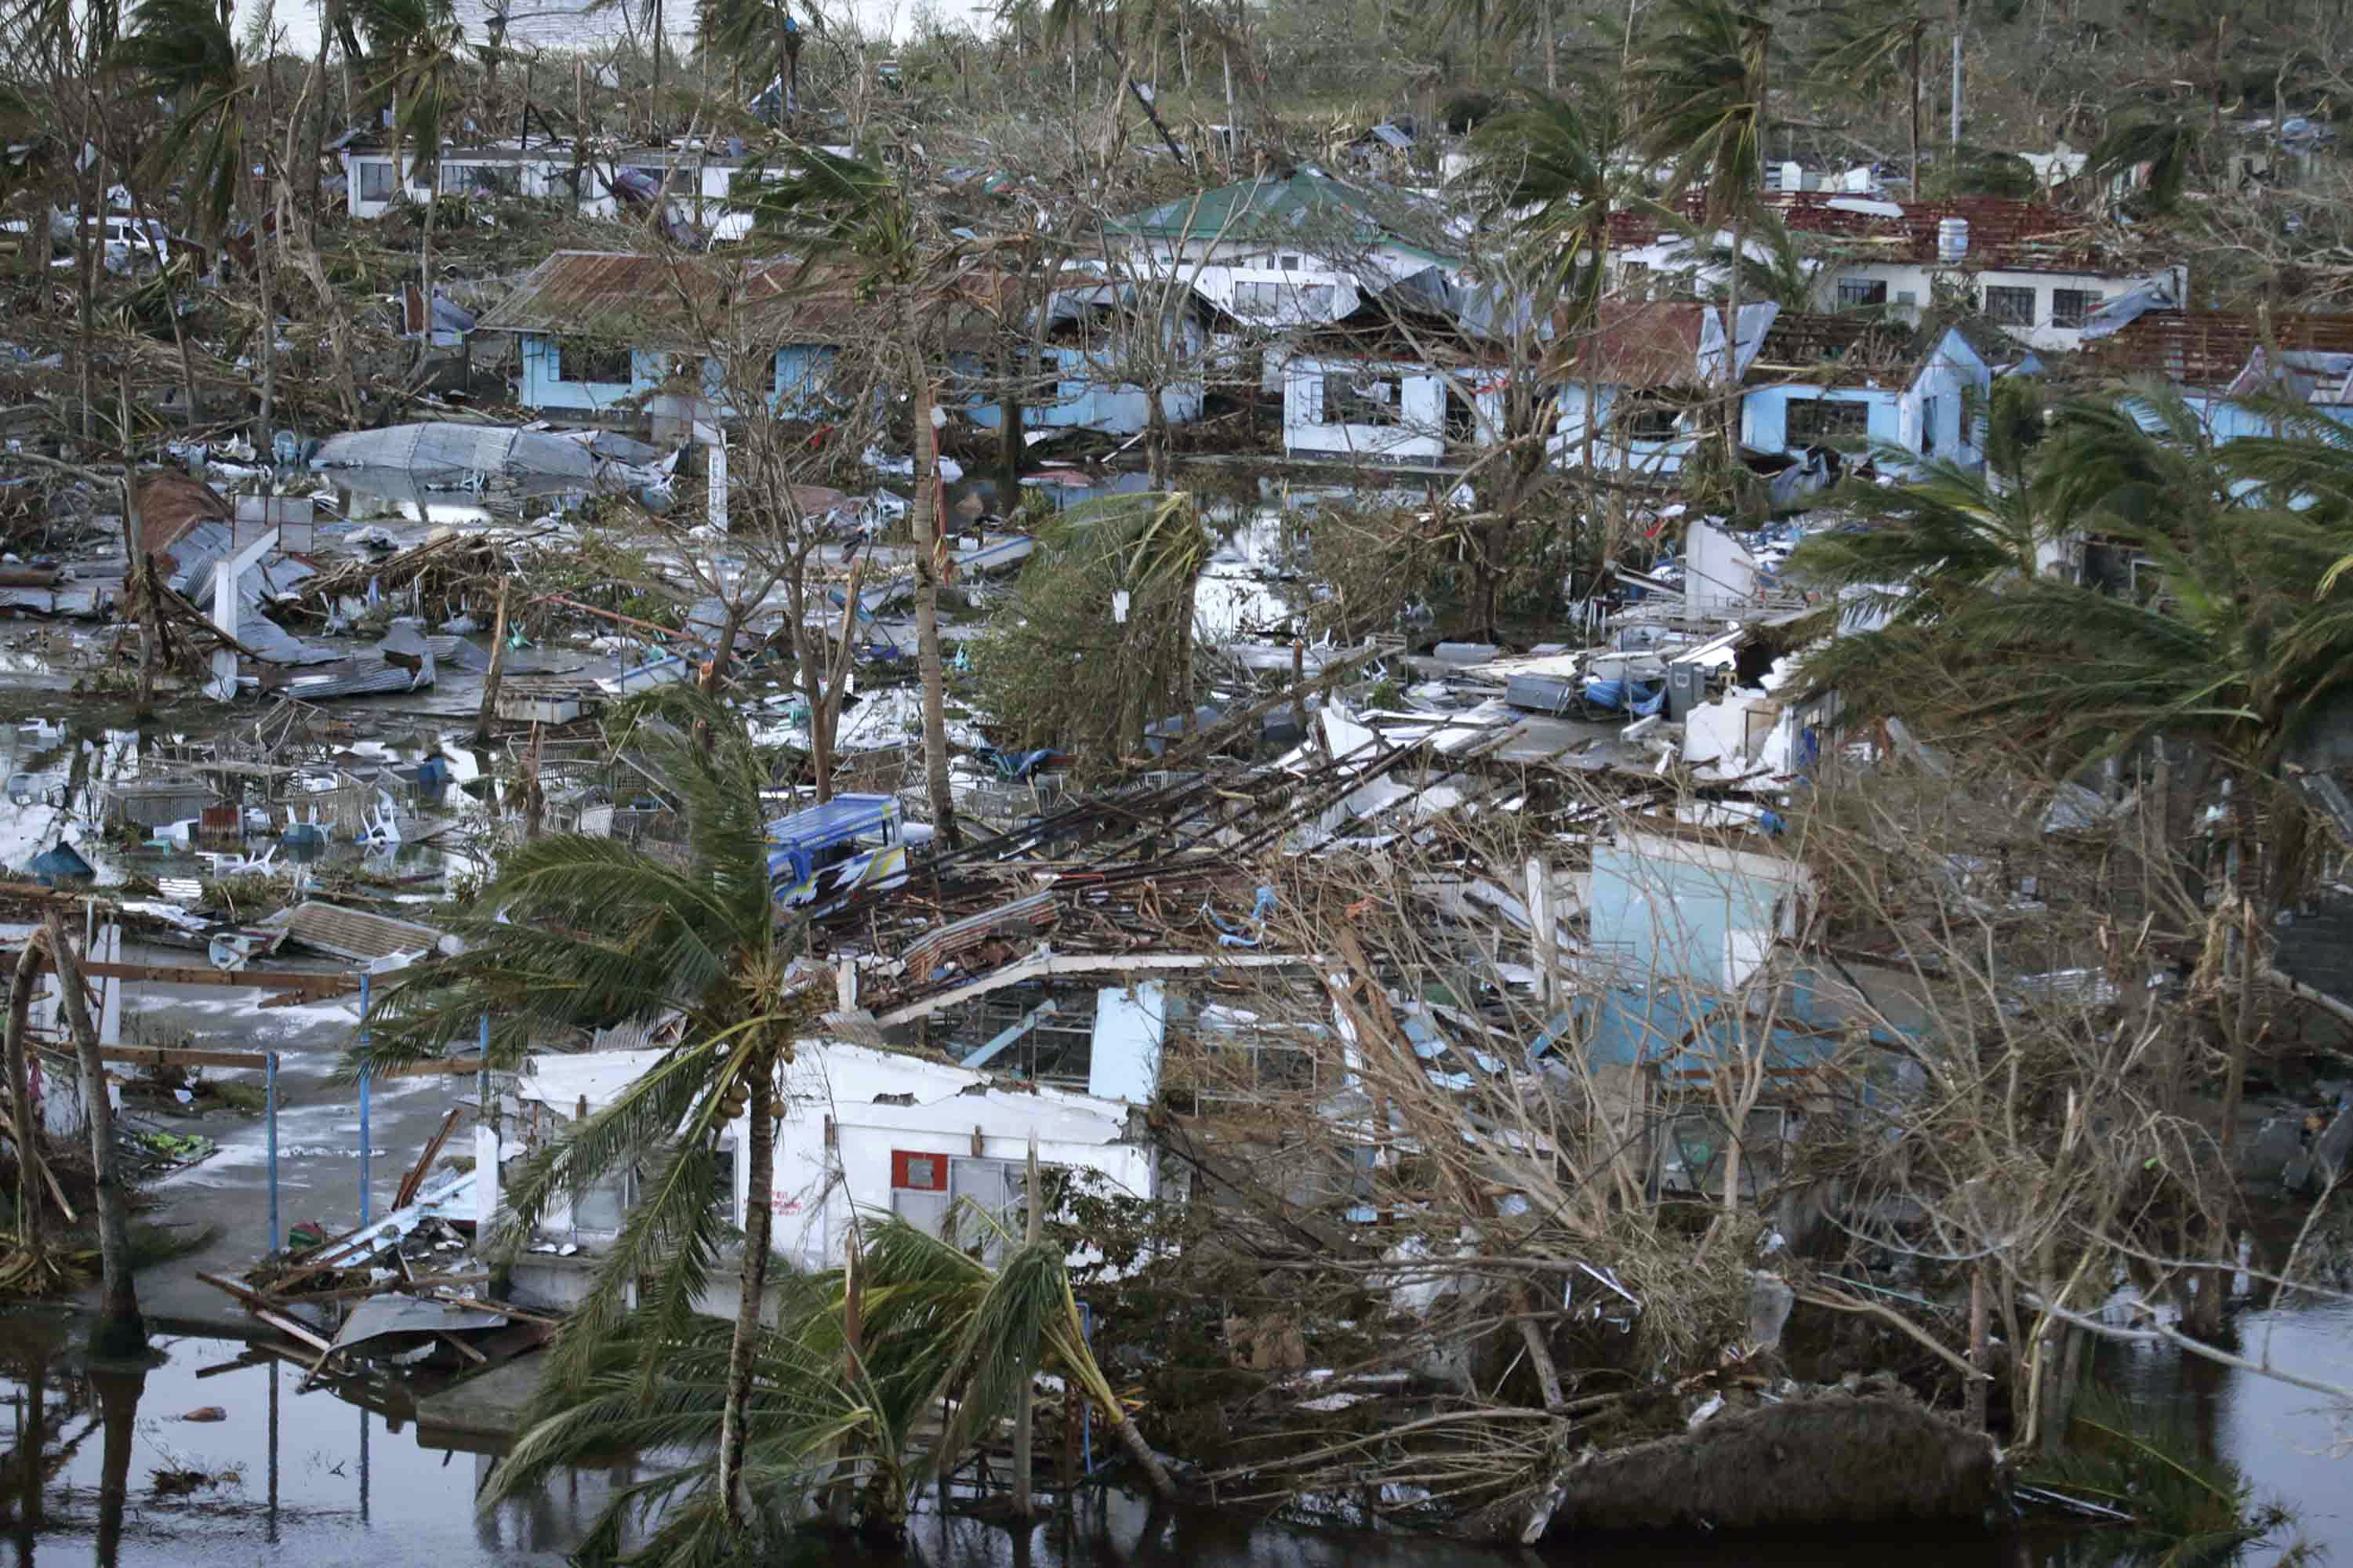 The city of Tacloban, in Leyte province in central Philippines, was practically flattened when Typhoon Haiyan roared through Friday. Officials say thousands may have died.